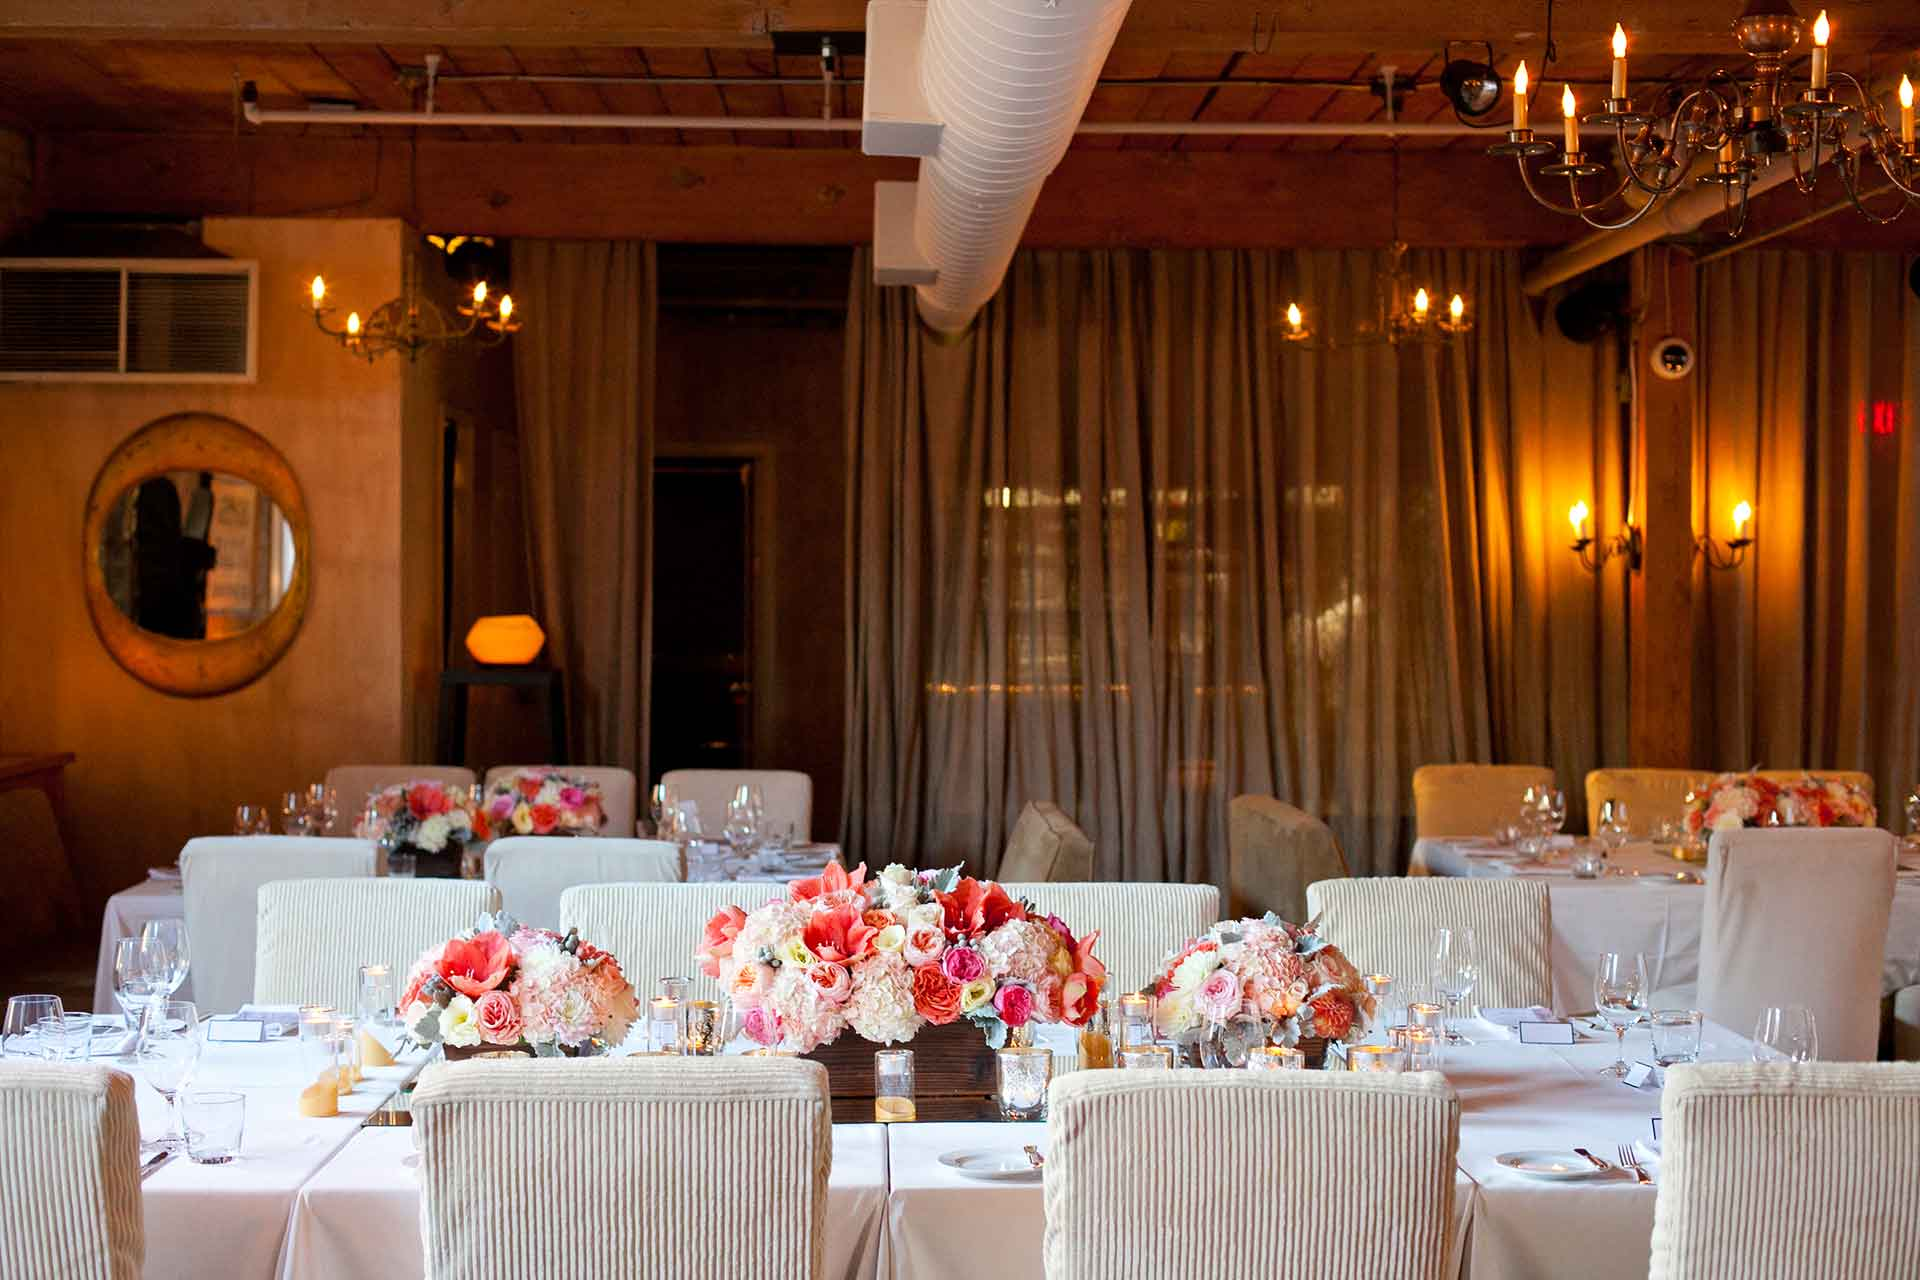 Toronto Wedding Venues - Restaurant Reception Tablescape Pink Theme